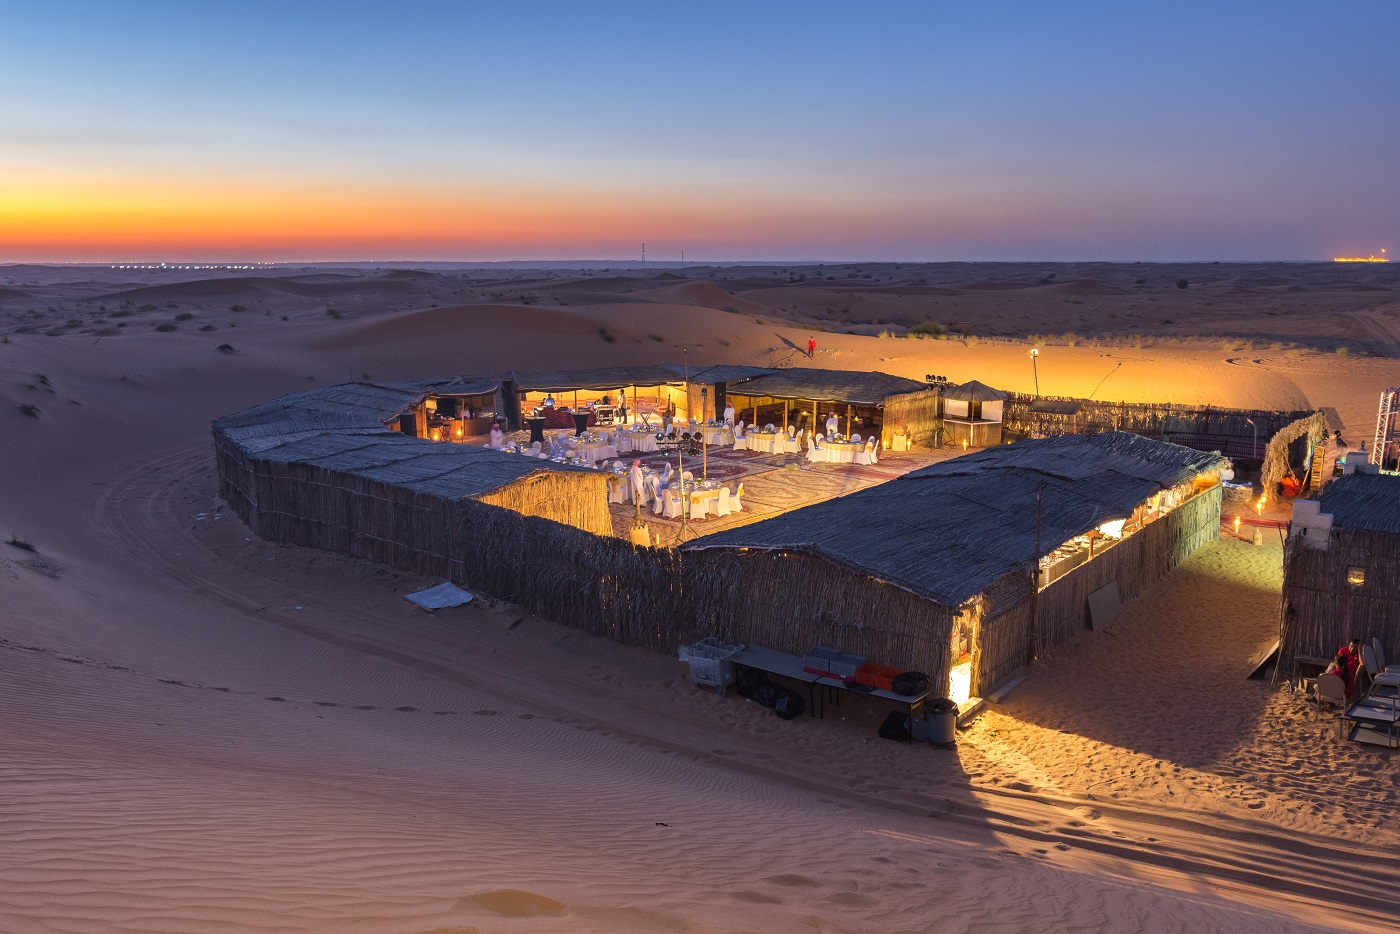 Gala Dinner Setup in Desert